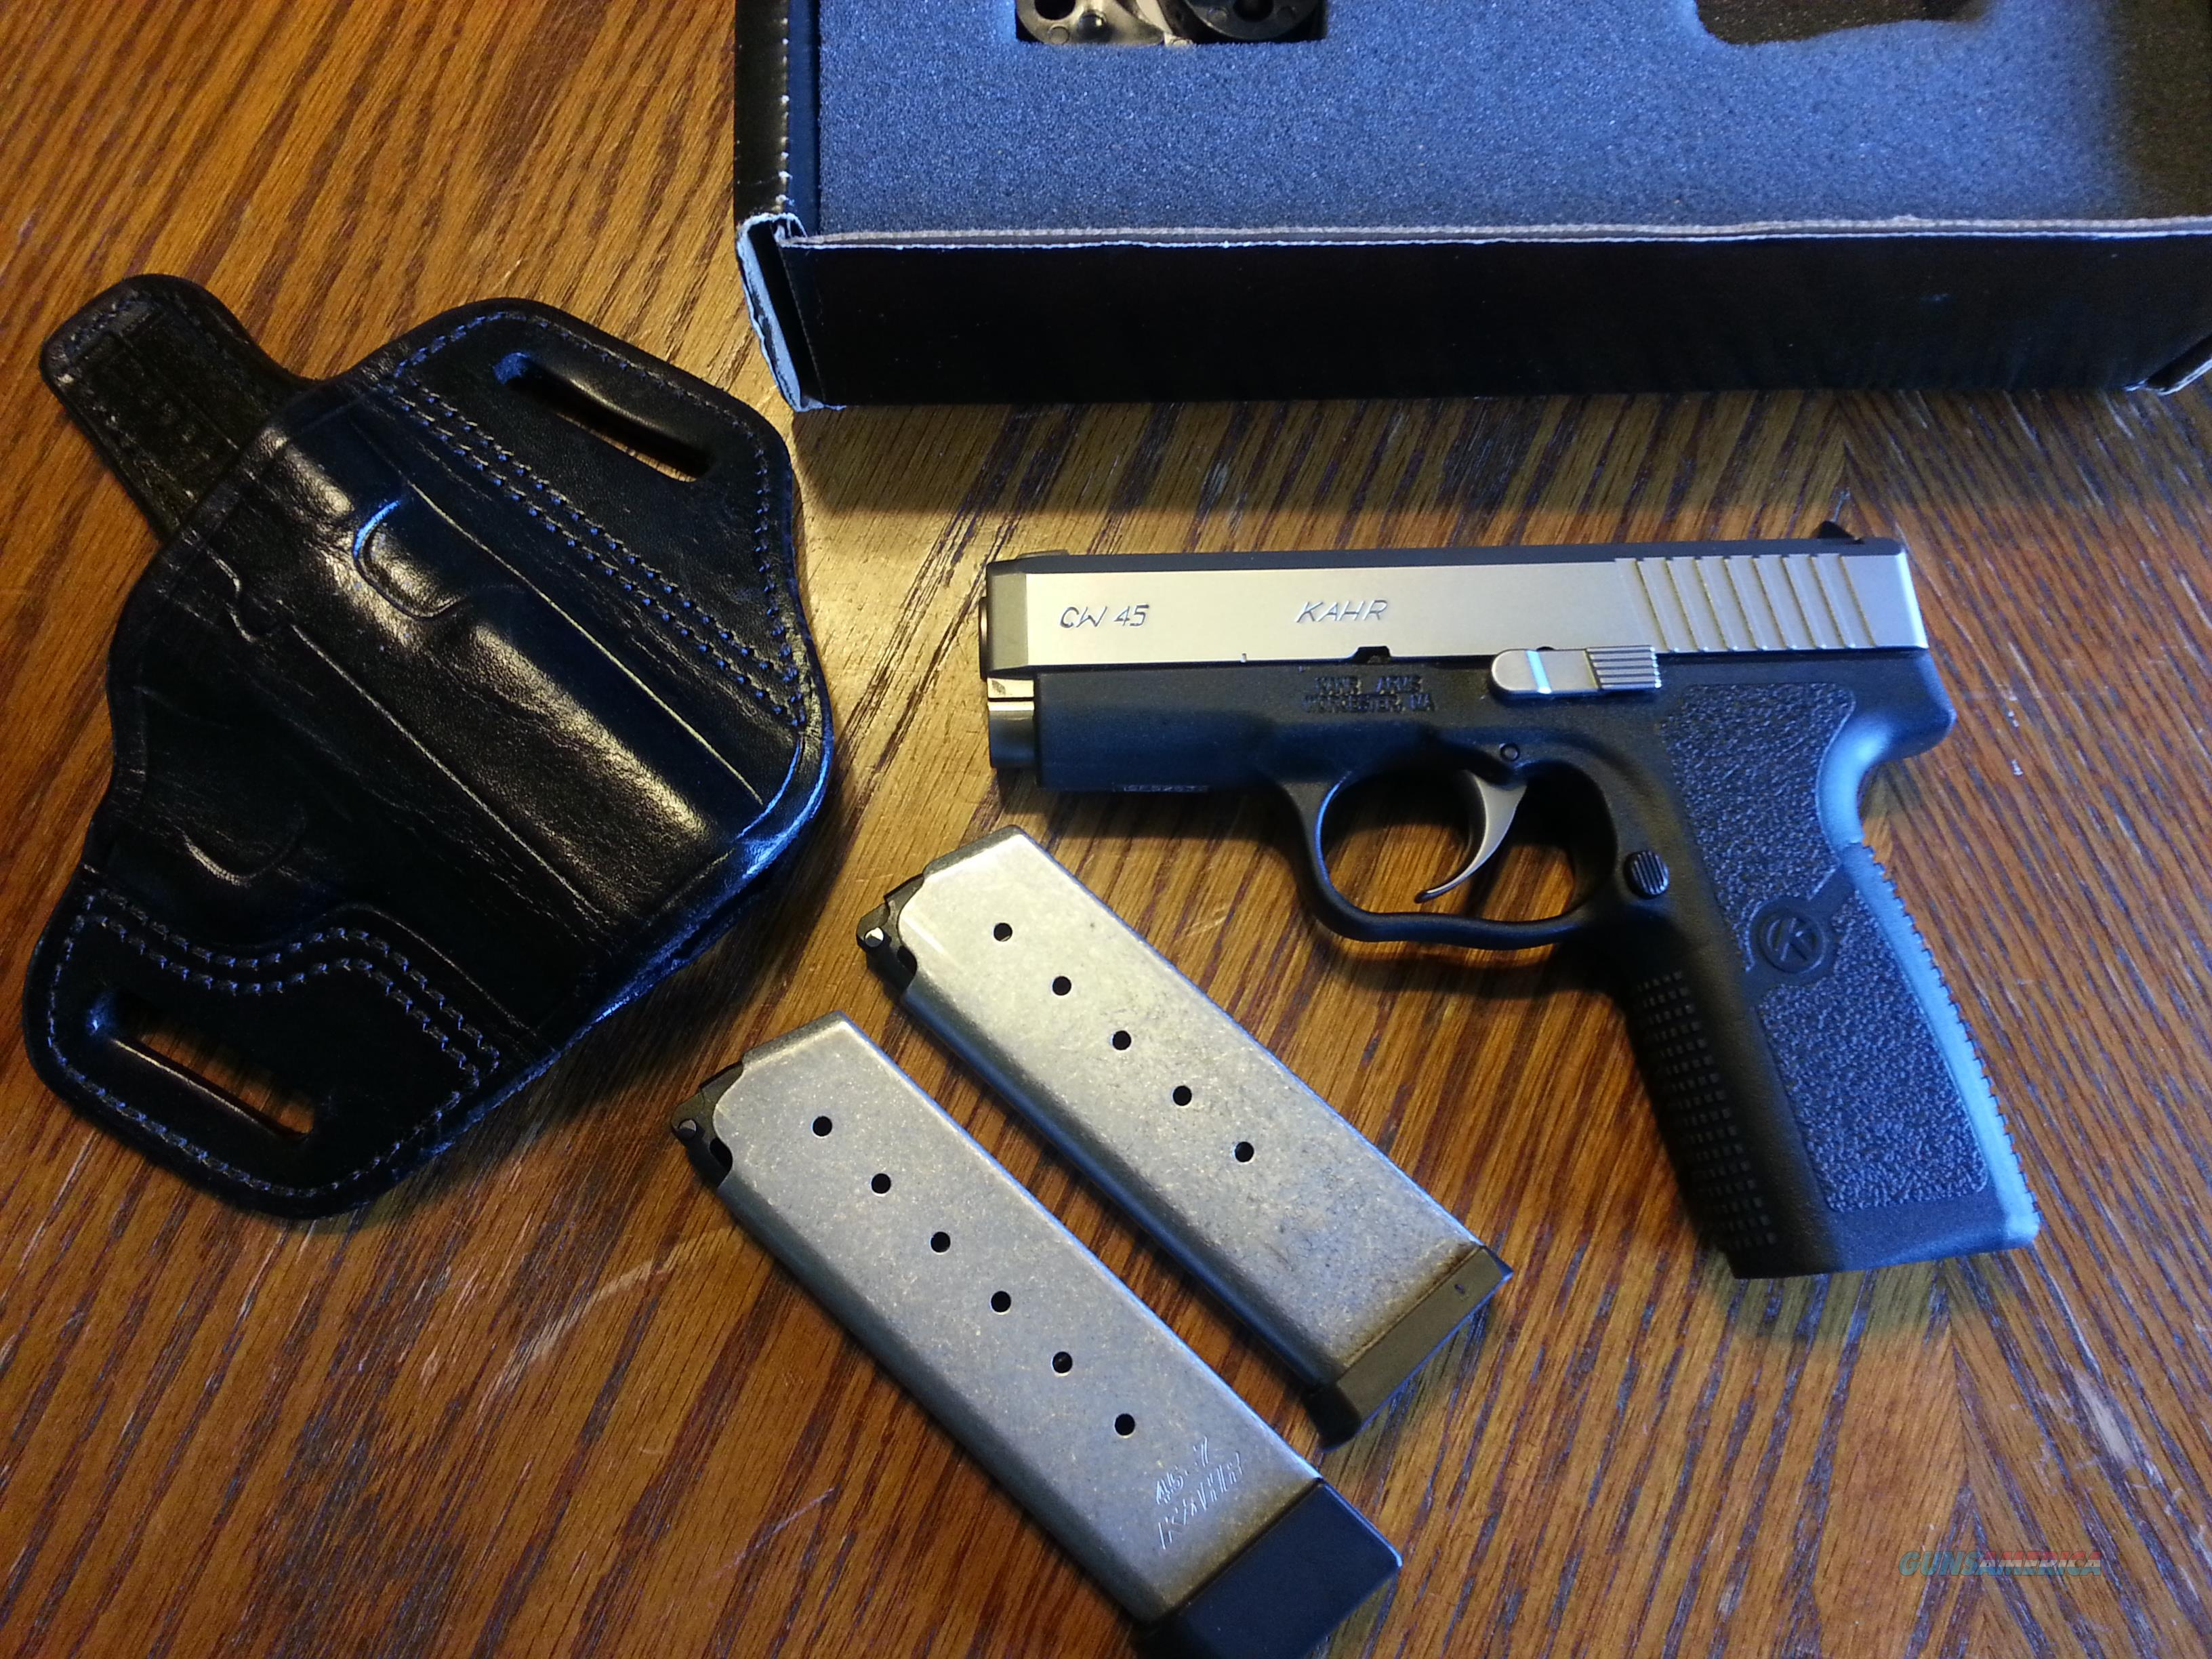 Kahr CW 45 Stainless 2 Tone 45ACP 2 Mags Like New In Box with Custom Leather Holster Concealed Carry  Guns > Pistols > Kahr Pistols